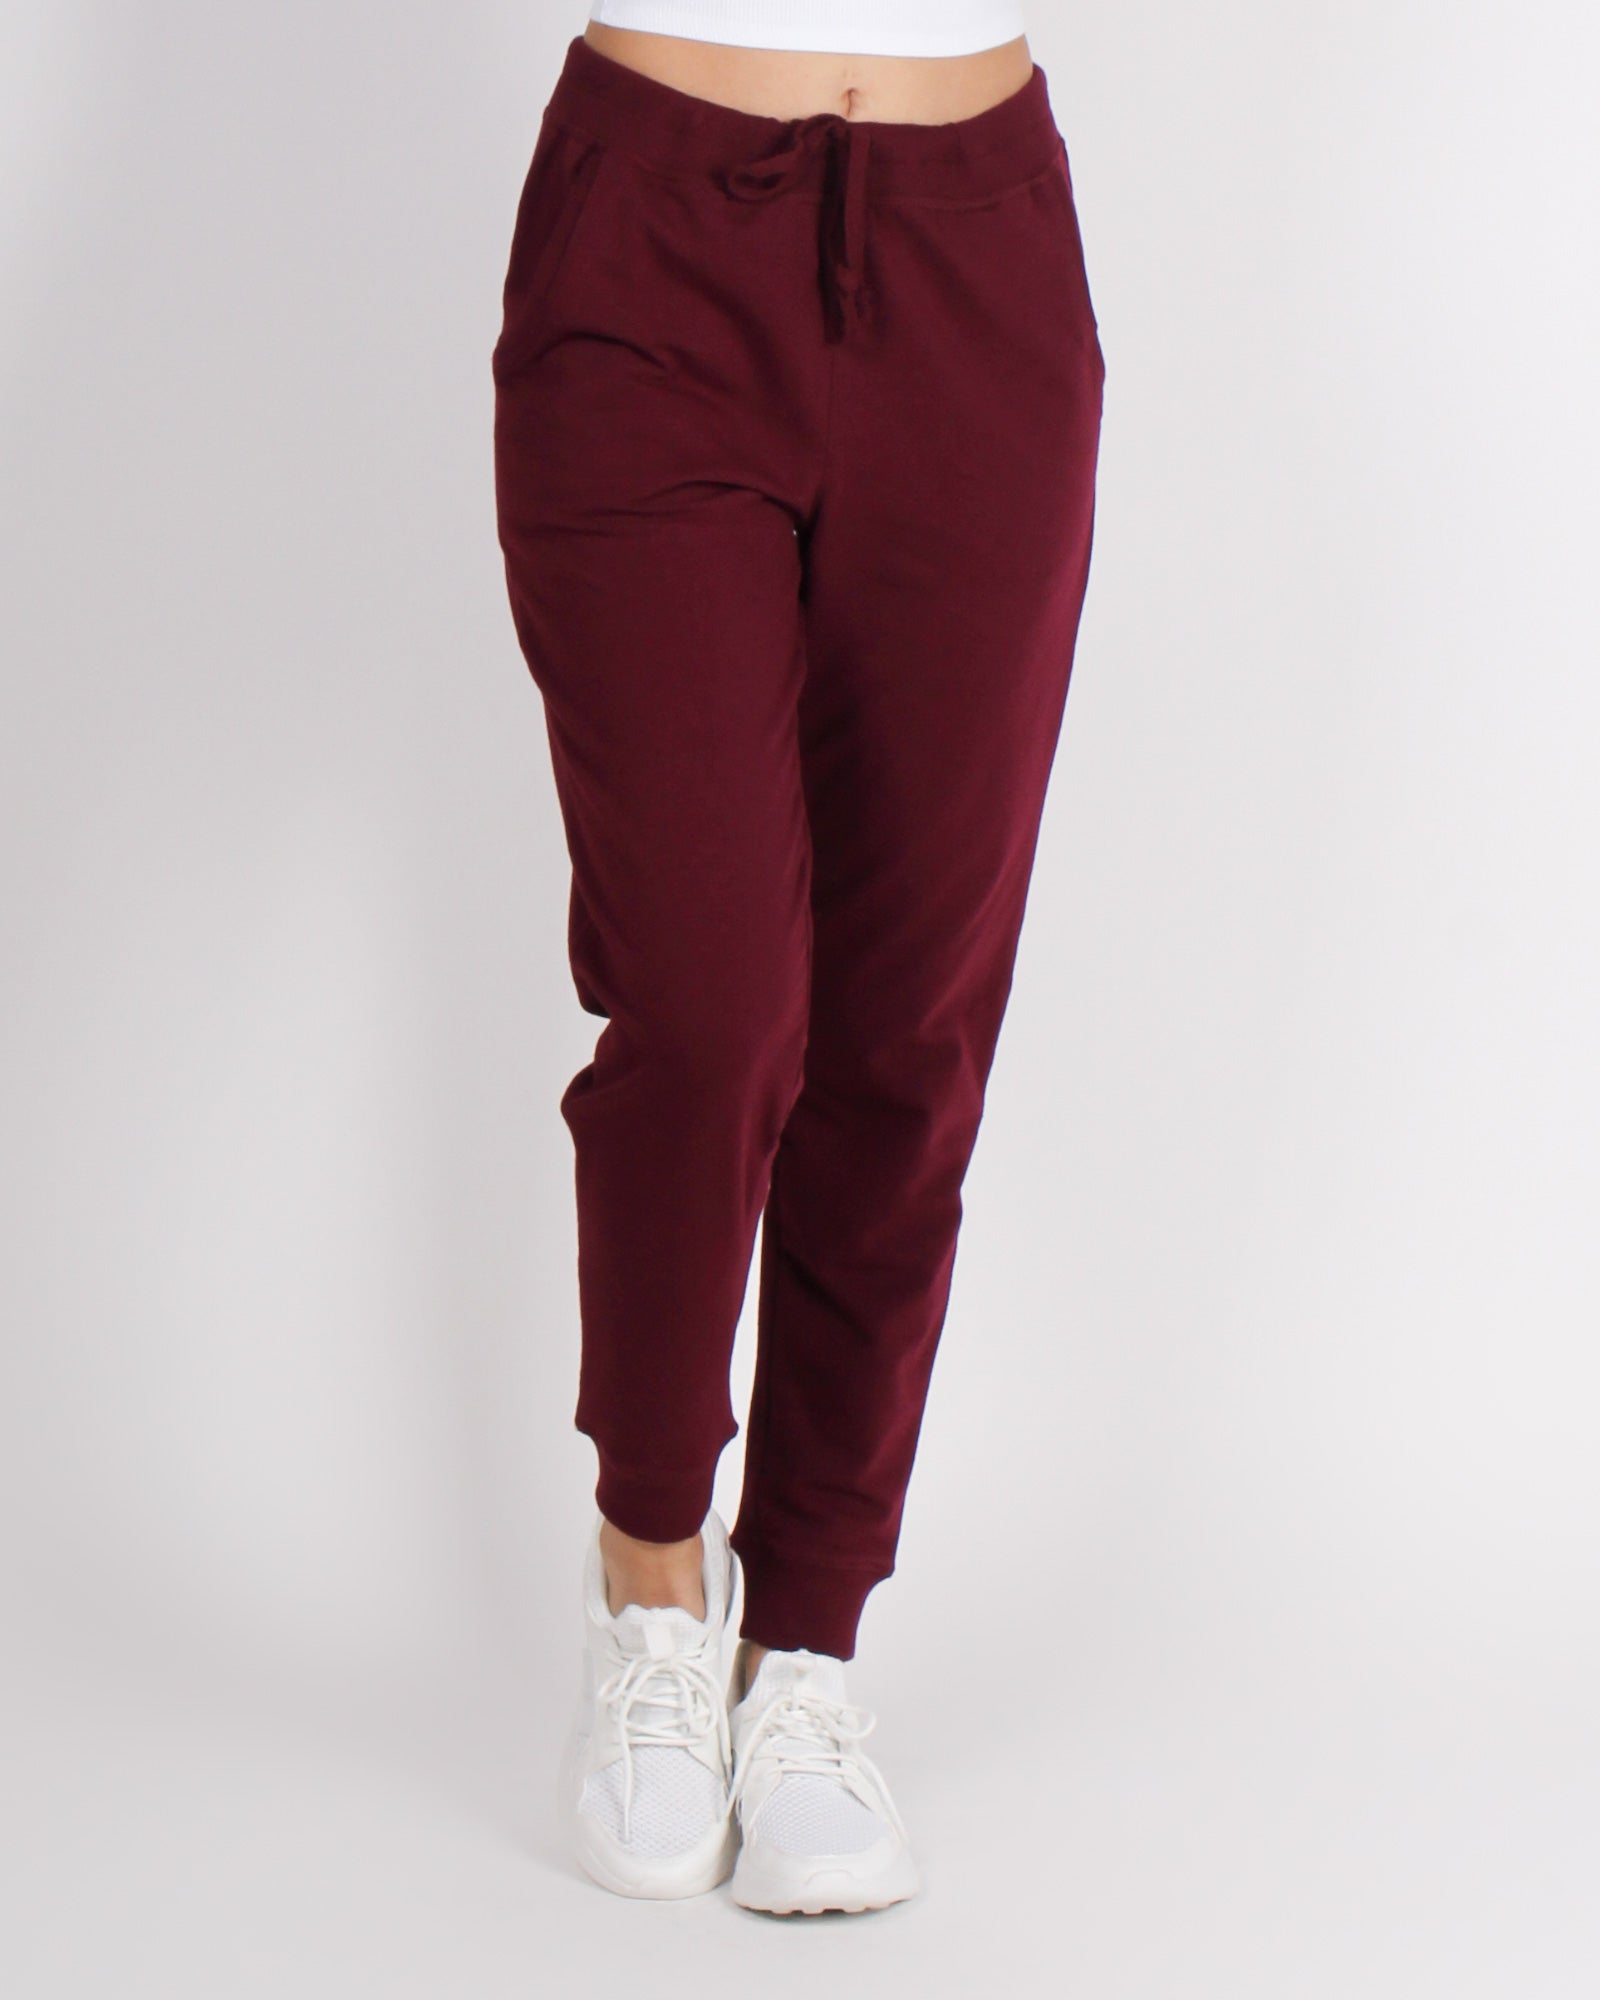 Fashion Q Shop Q Bombastic Love Jogger Pants (Burgundy) 65776